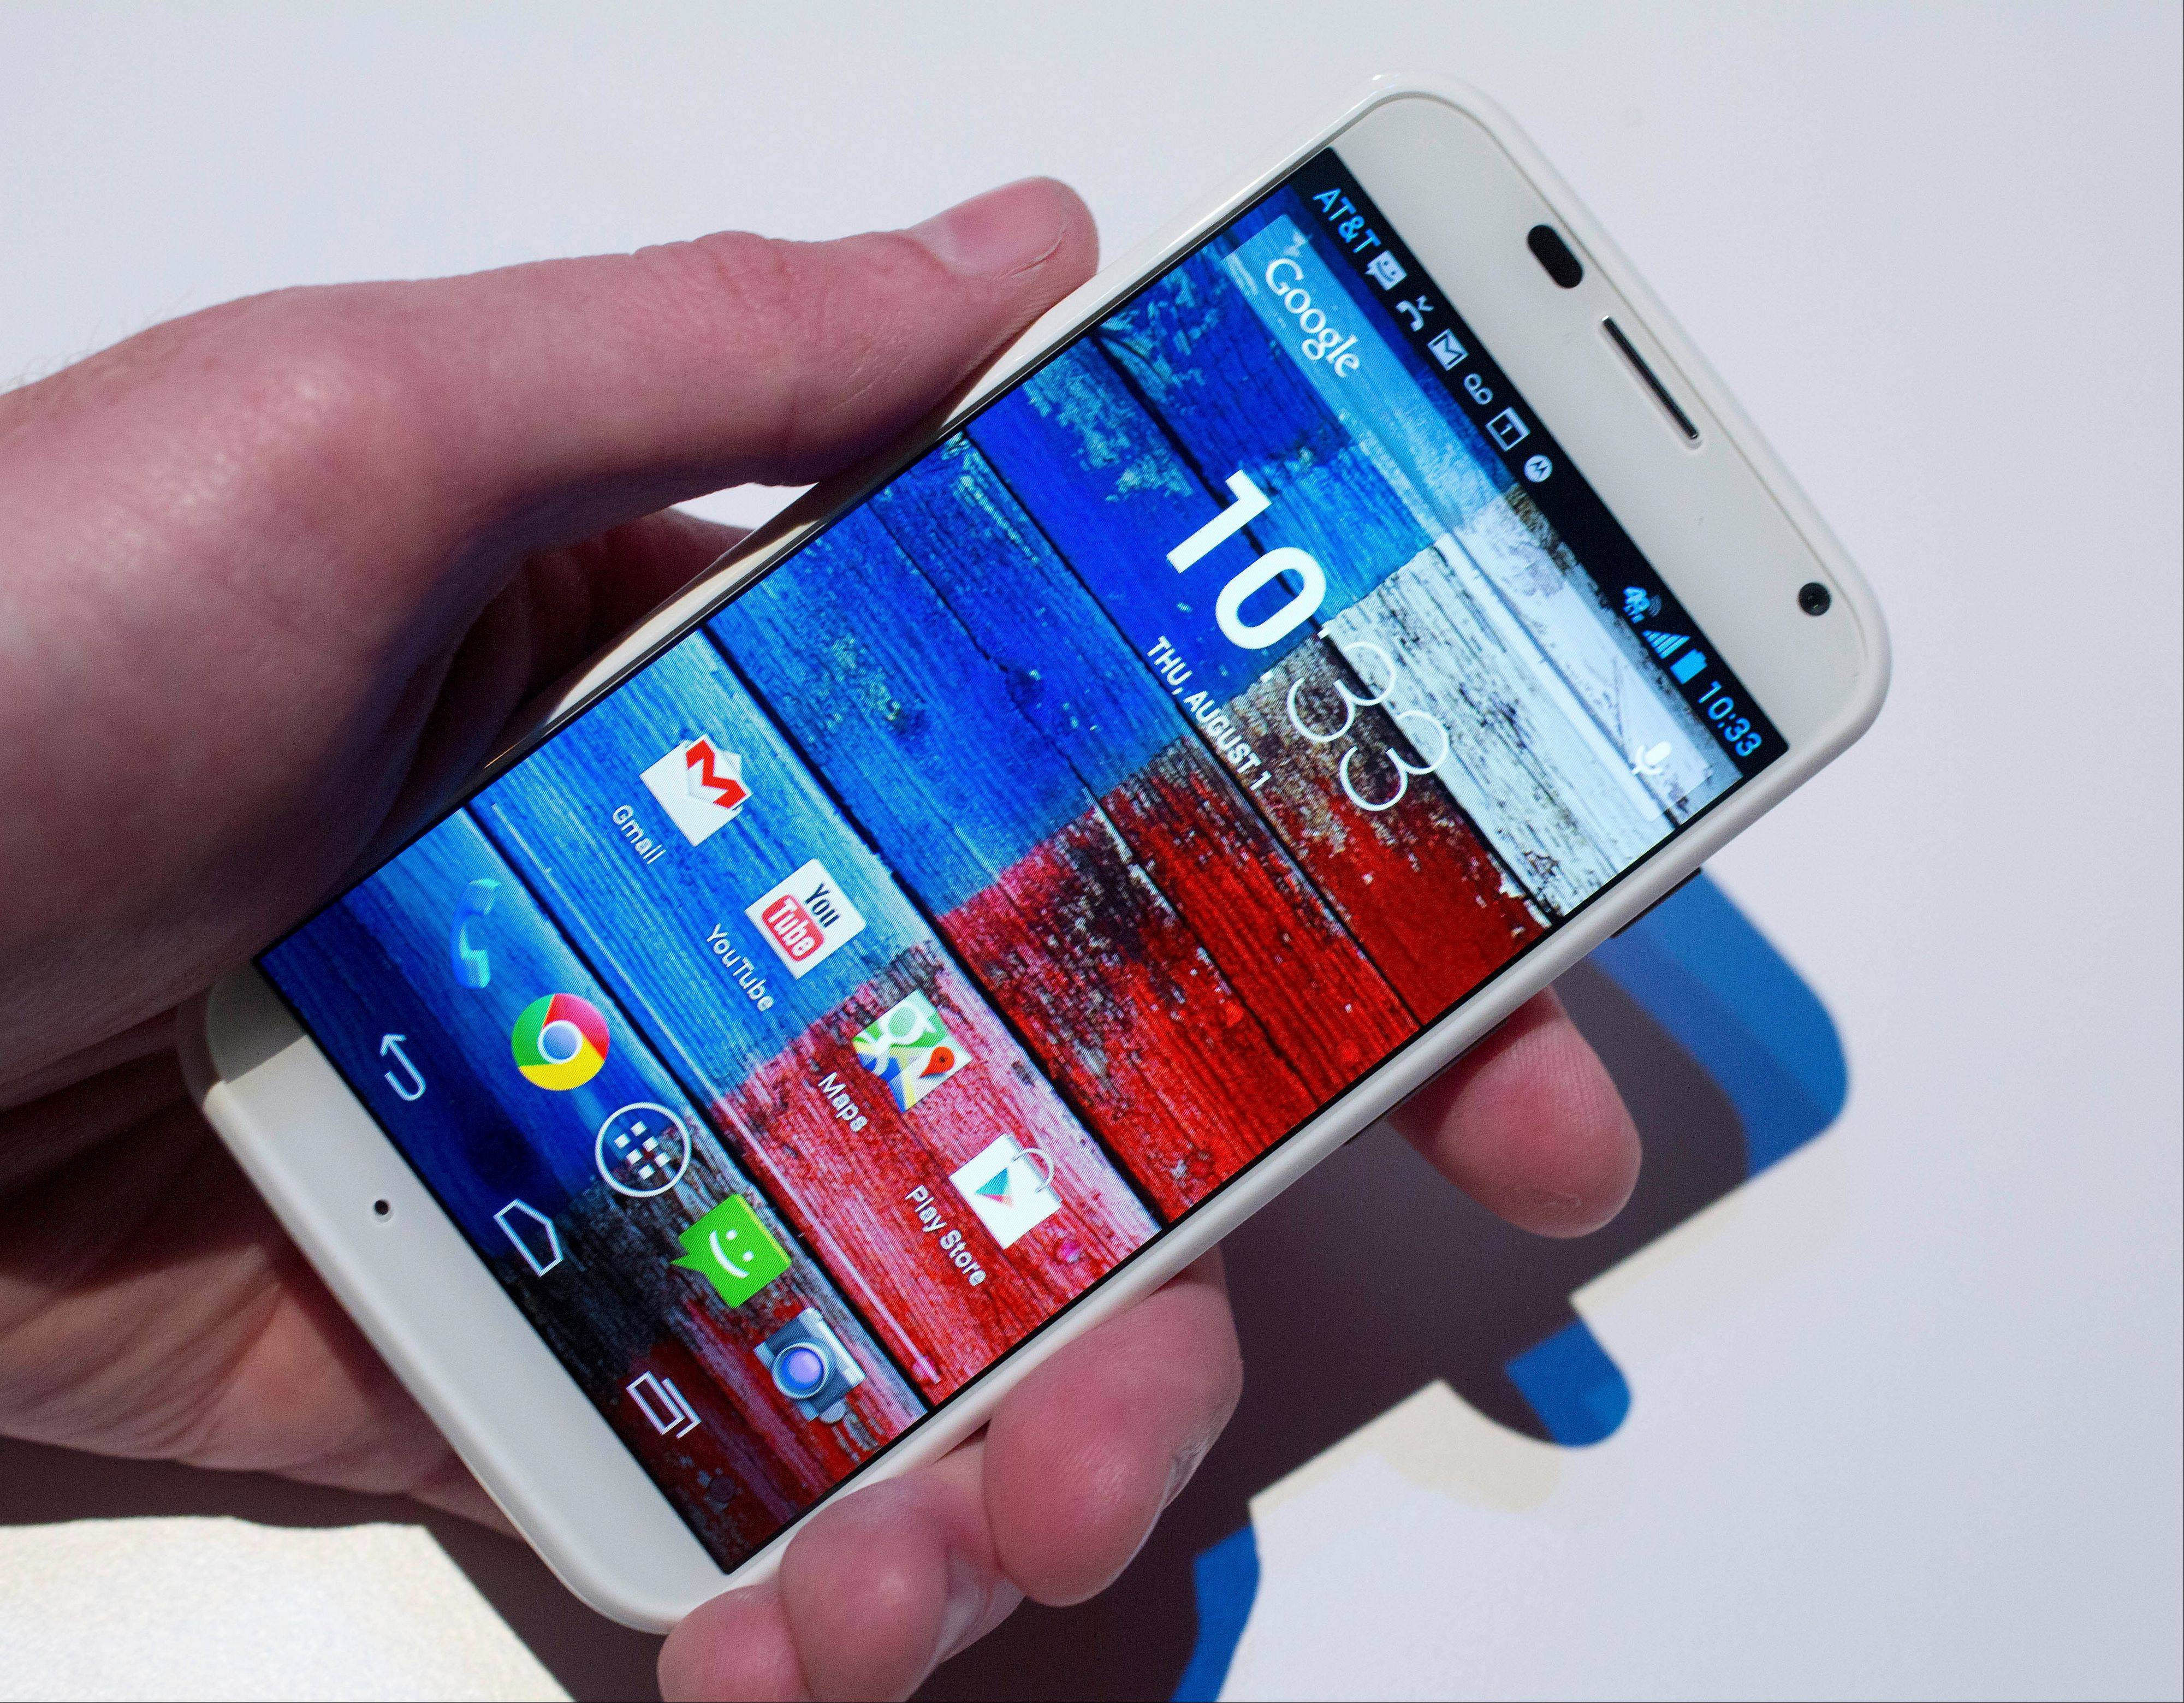 The Motorola Moto X smartphone, using Google's Android software.